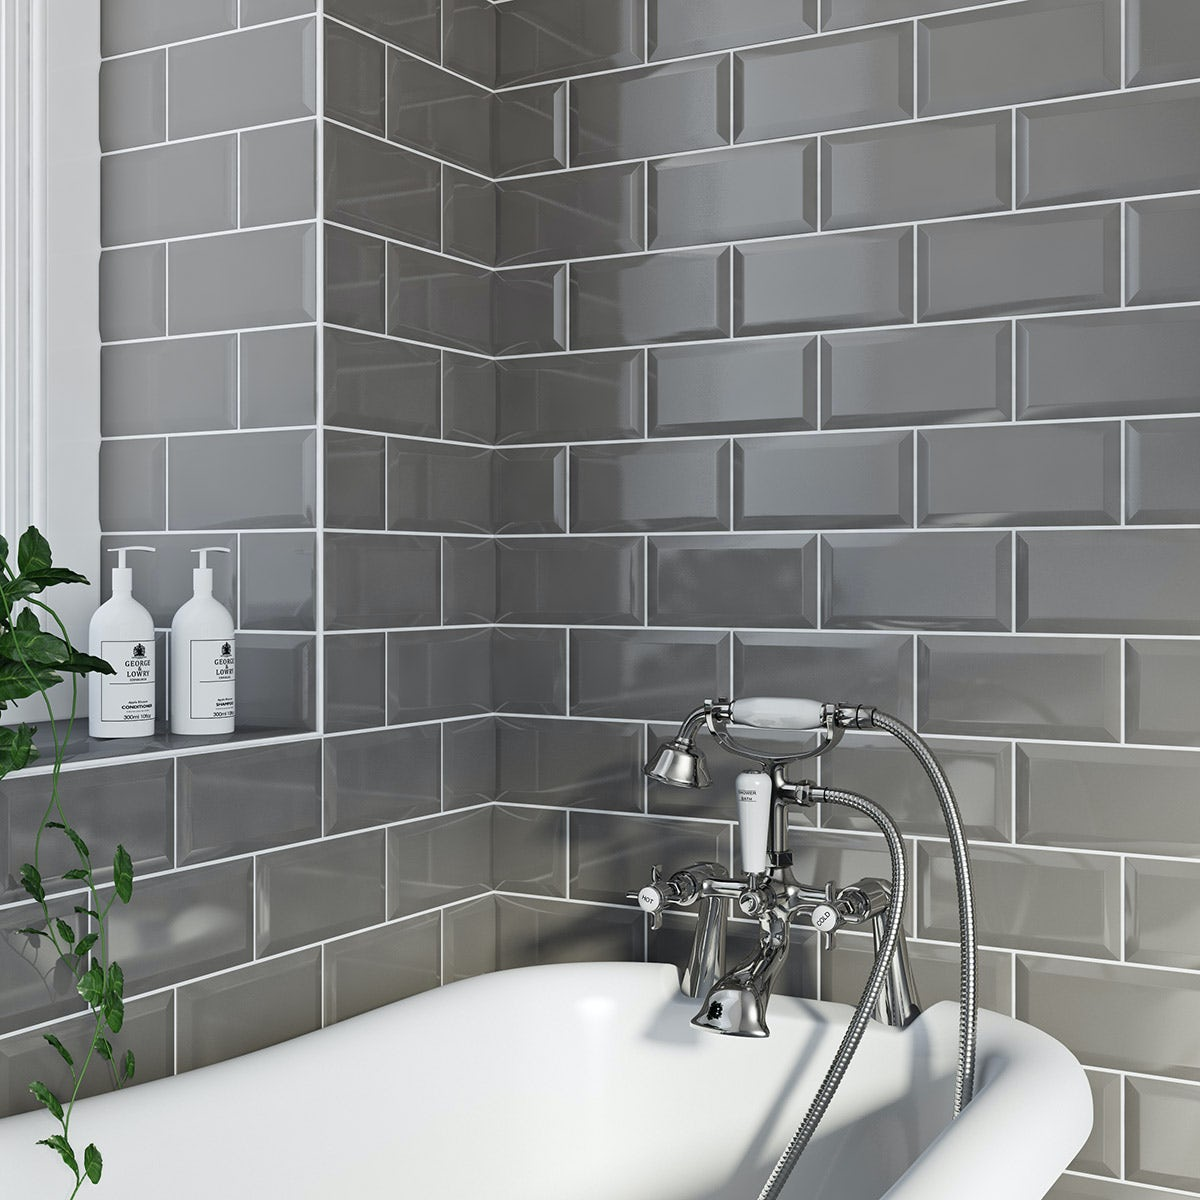 British Ceramic Tile Metro bevel grey gloss tile 100mm x 200mm